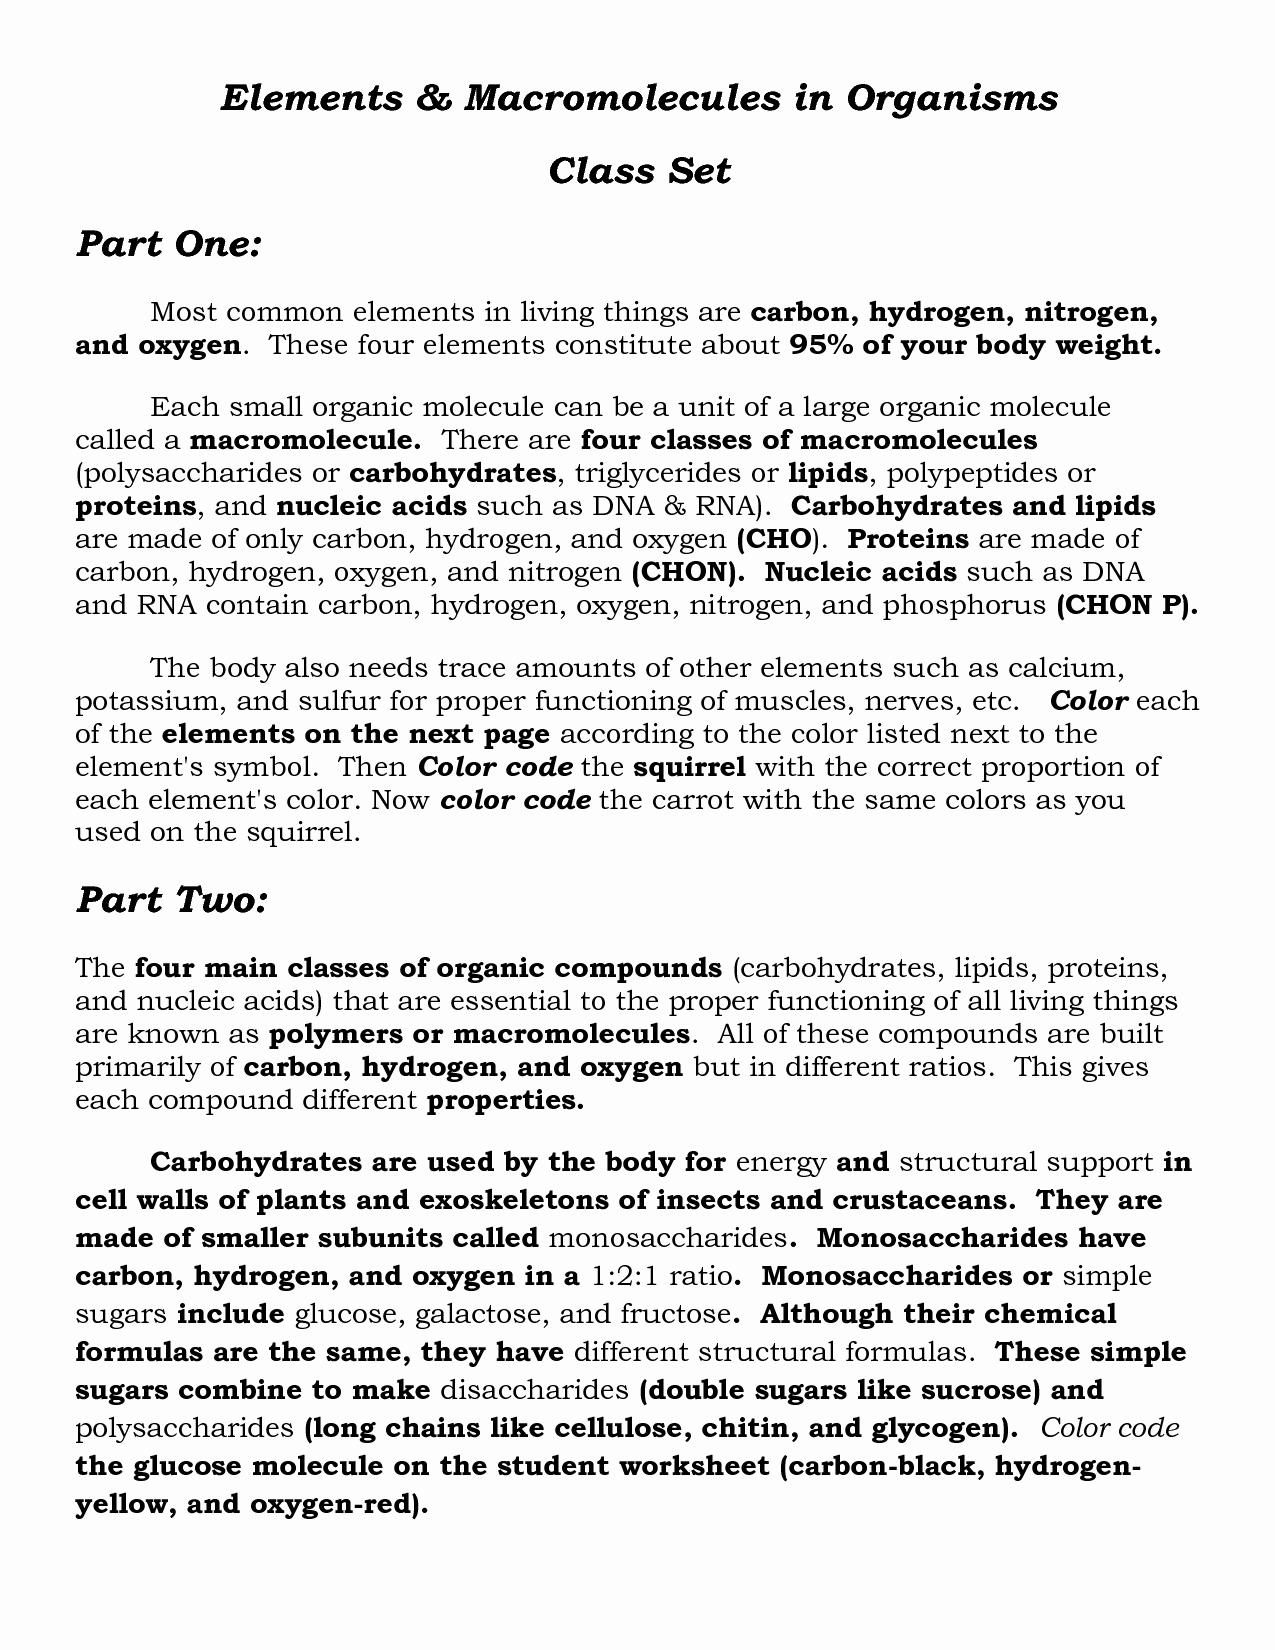 Building Macromolecules Worksheet Answers Unique 16 Best Of Building Macromolecules Worksheet Answer